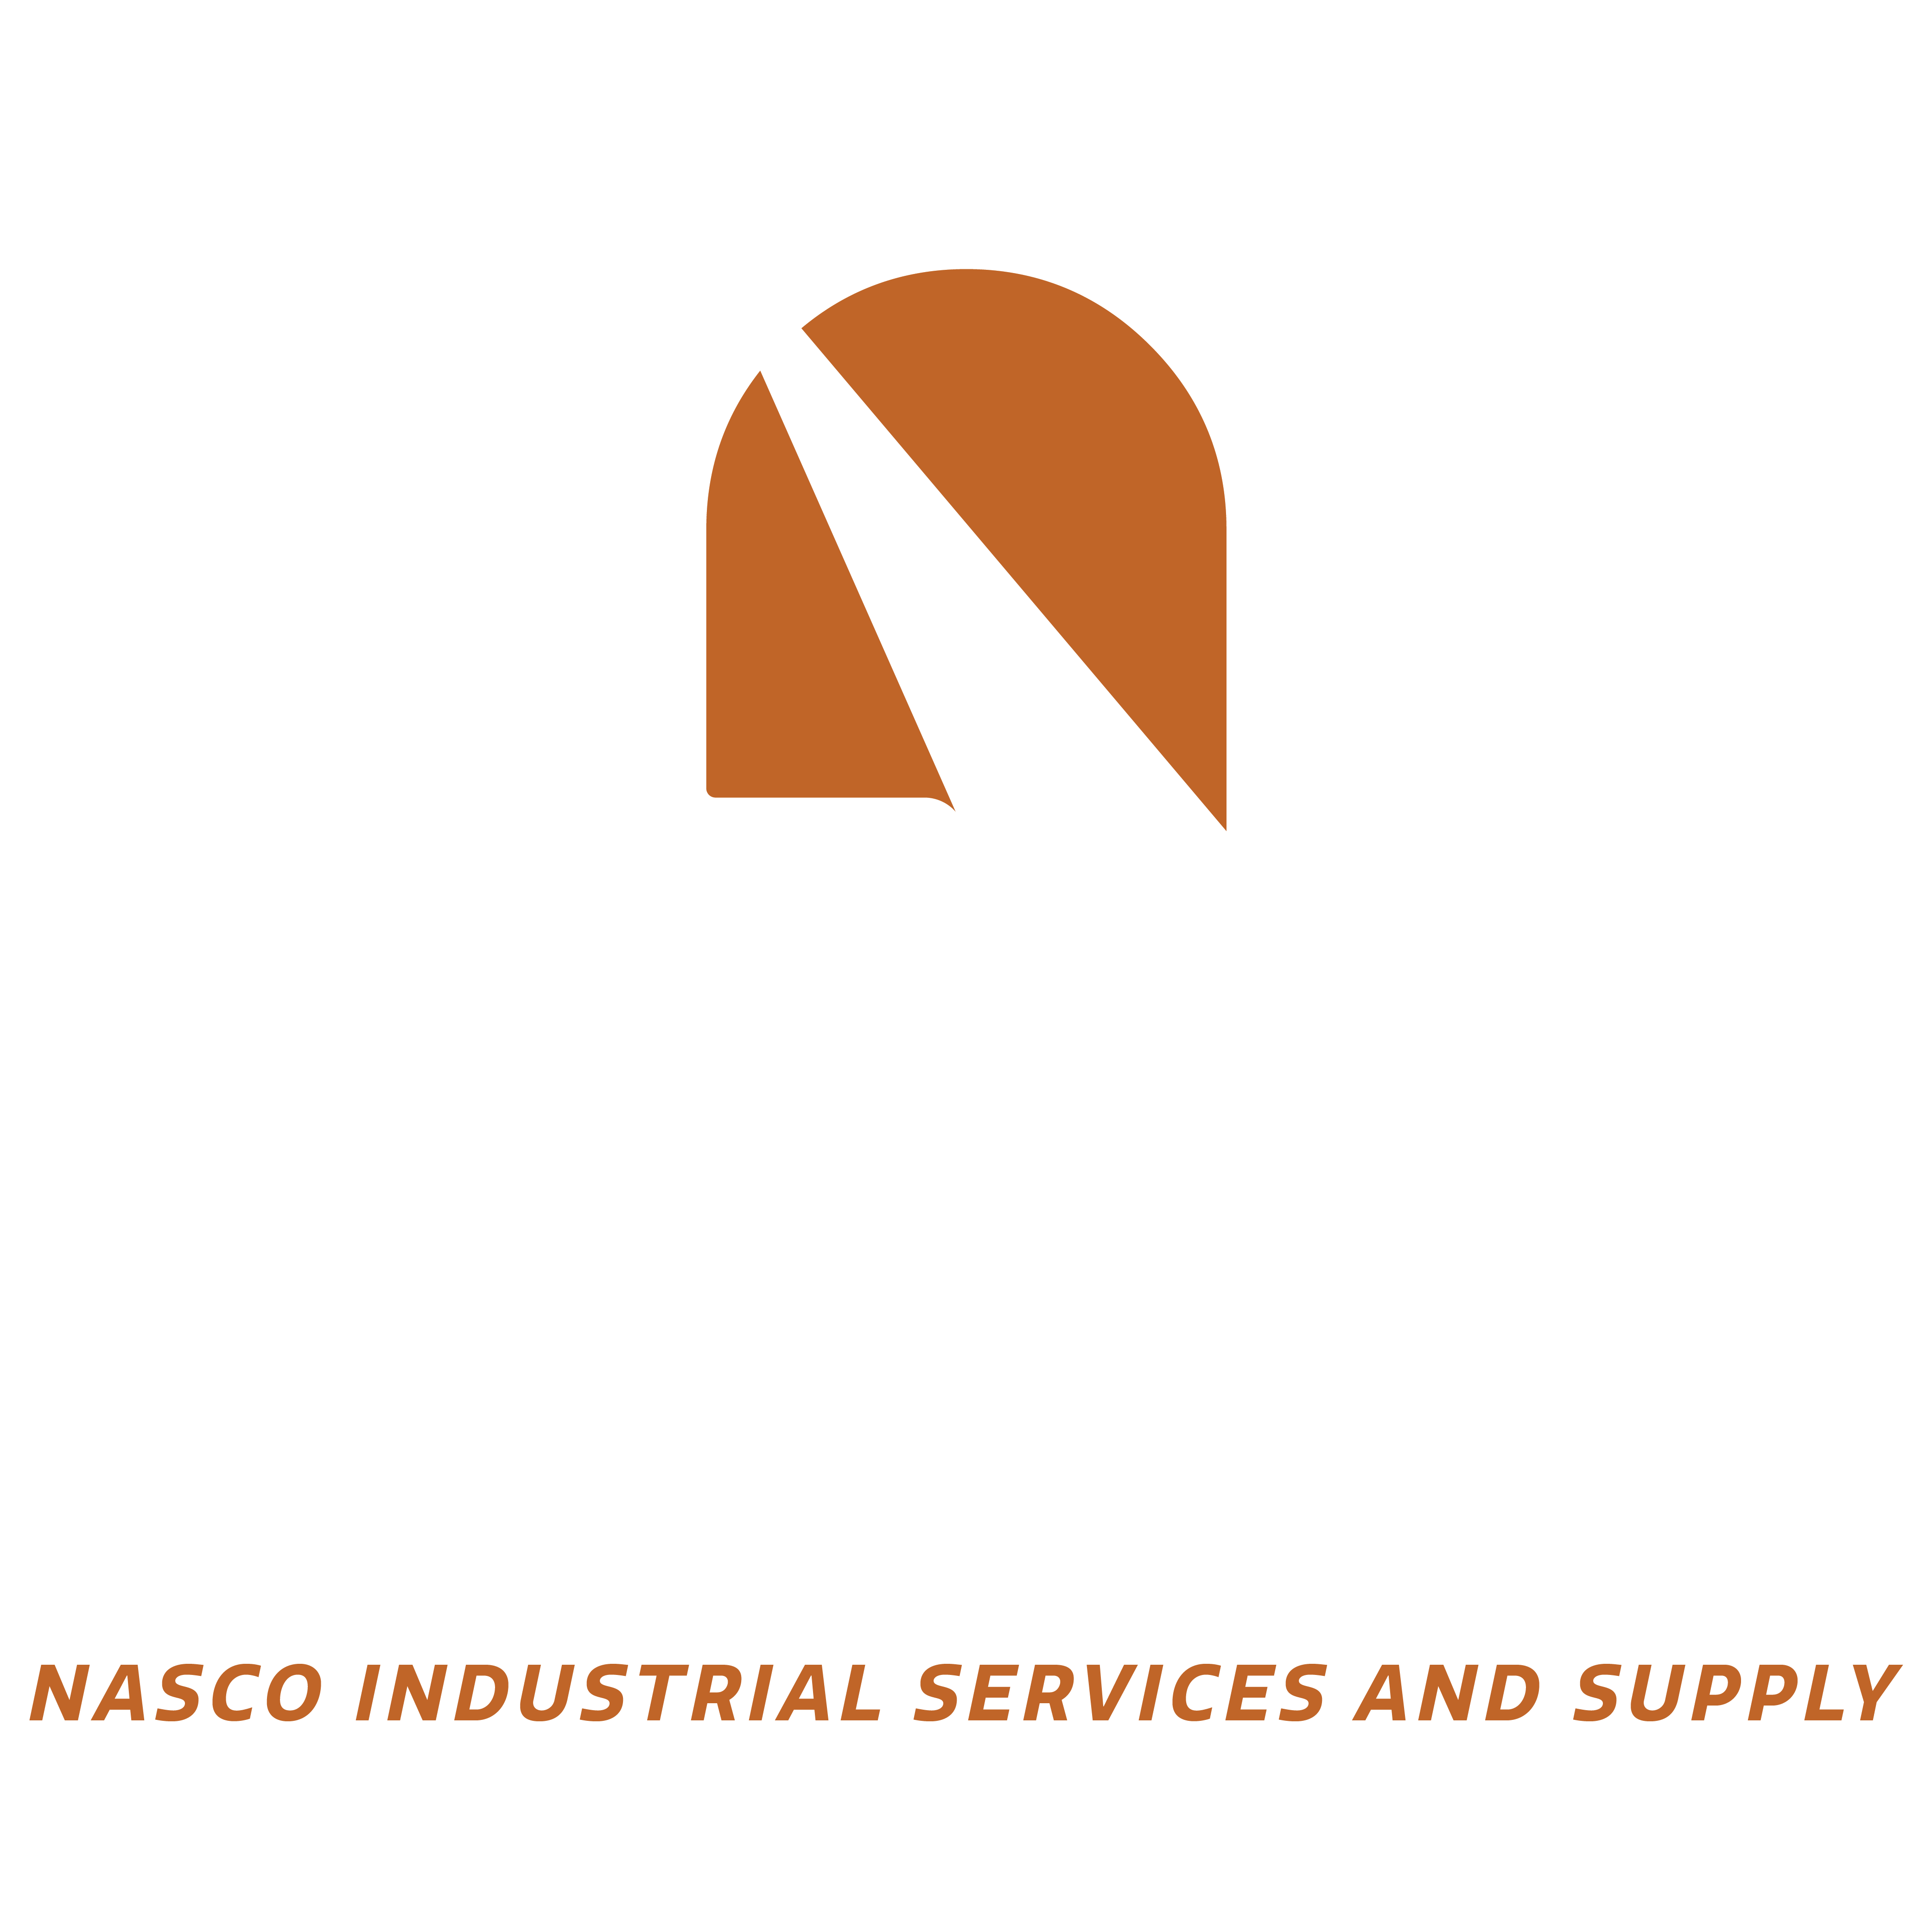 niss_logo_alternate-1_white-orange-title